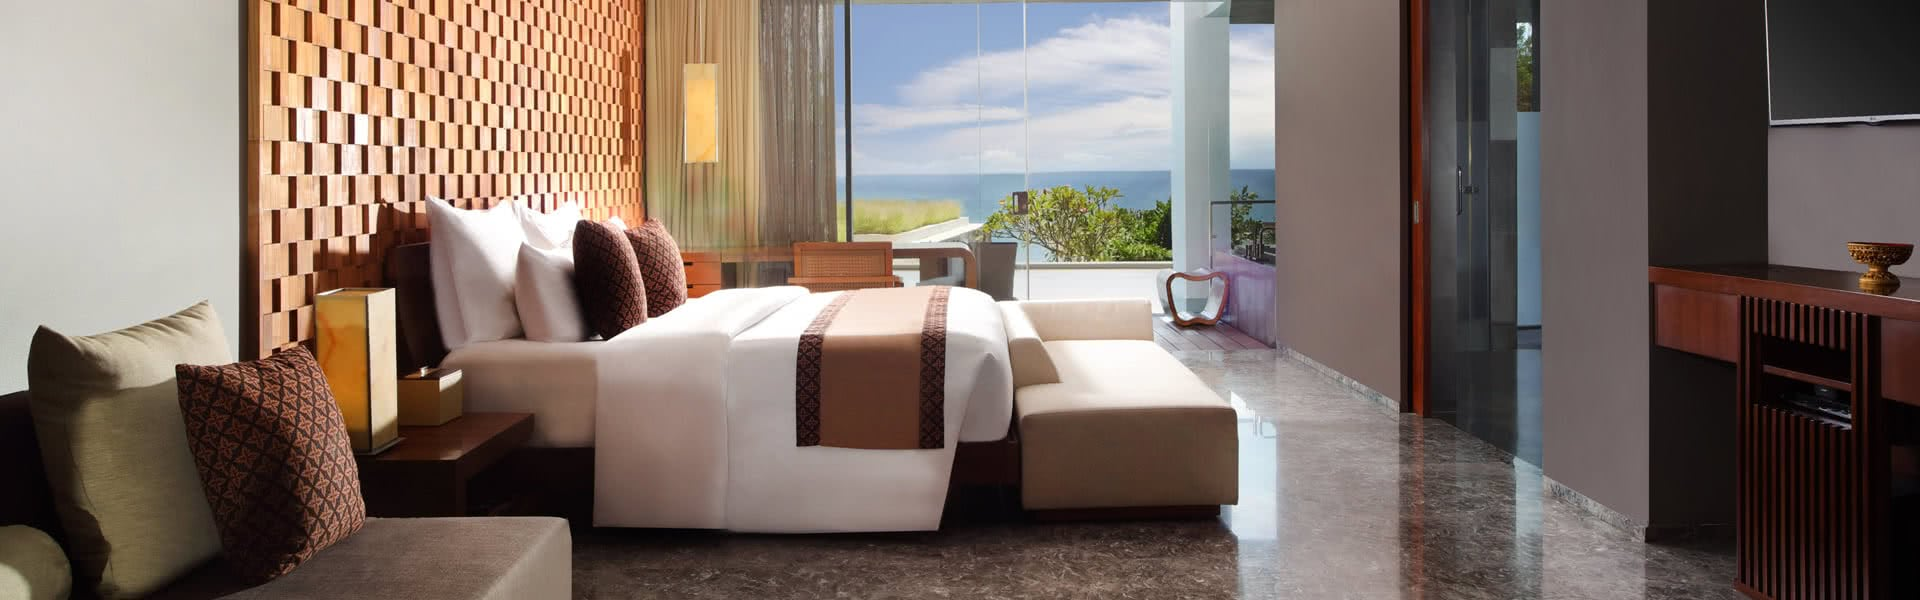 Corpus Rub Surf Resort Bali Ocean View Pool Suite At Anantara Uluwatu Bali